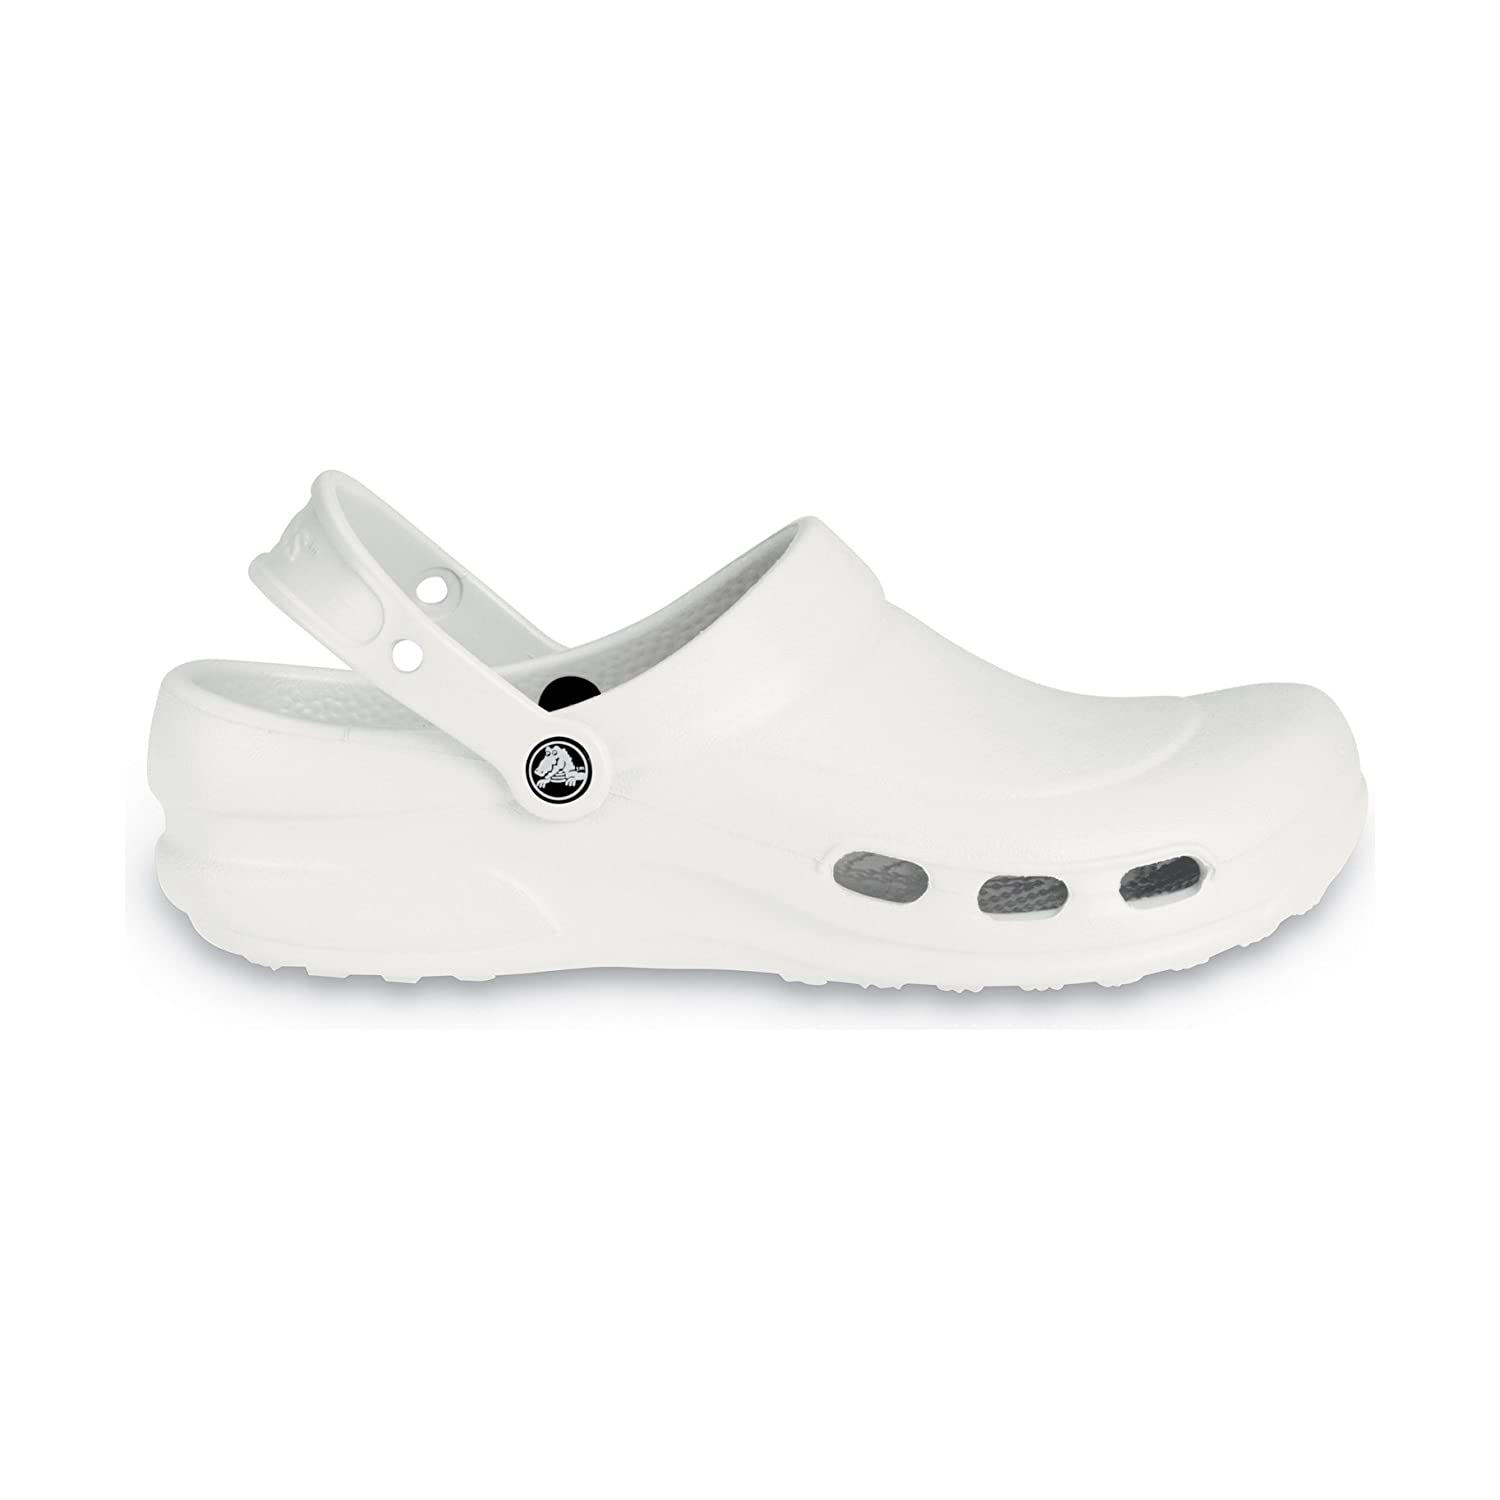 Crocs Specialist Vent, Crocs Sabots Mixte Mixte Adulte B07BDTSGYR Blanc aef48be - fast-weightloss-diet.space